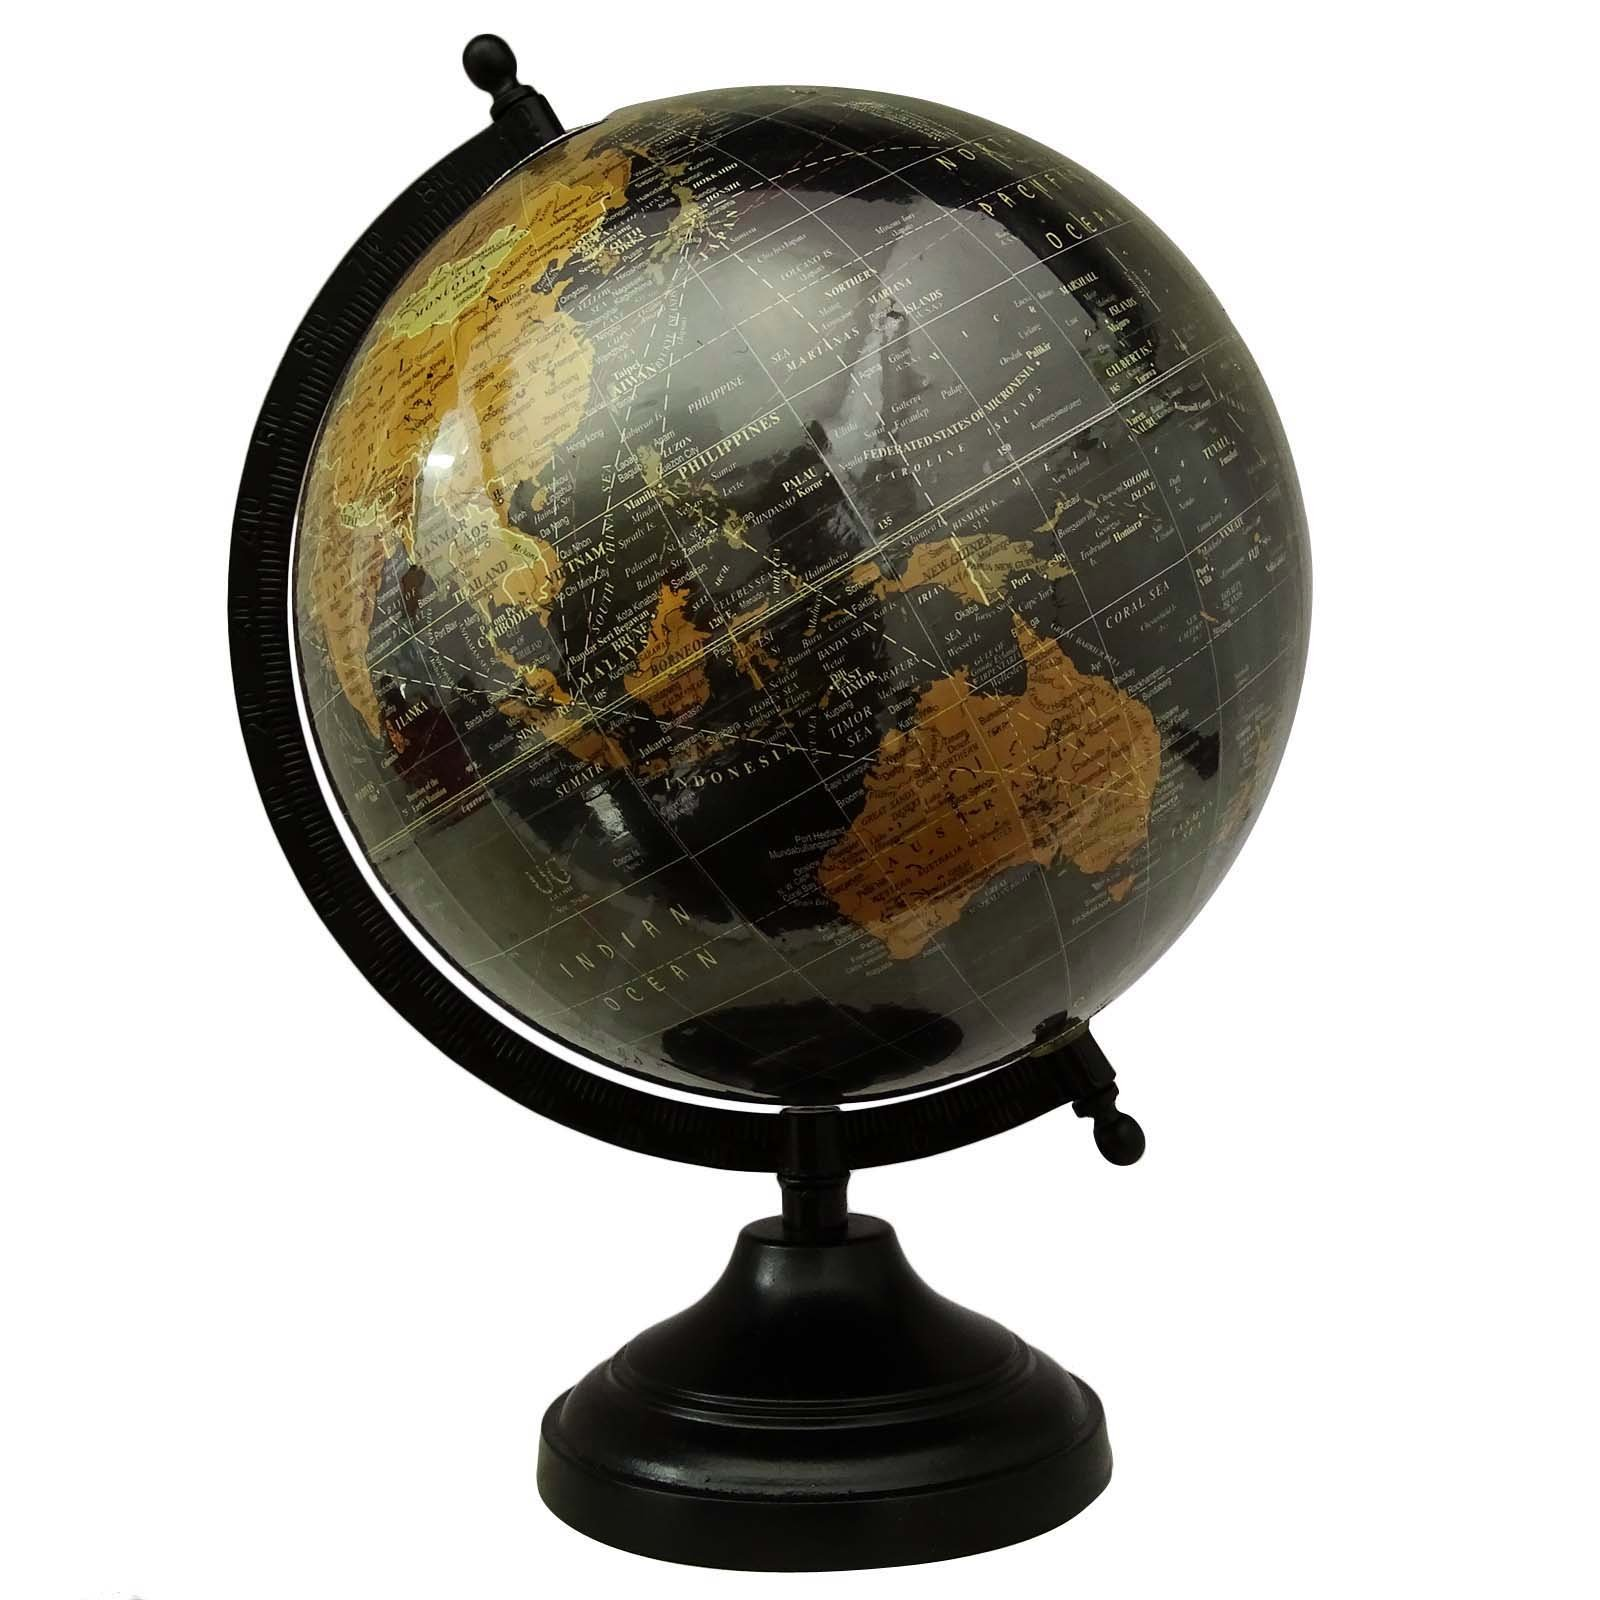 Uniworld Black Earth Globe Desktop Rotating World Ocean Geography Table Décor